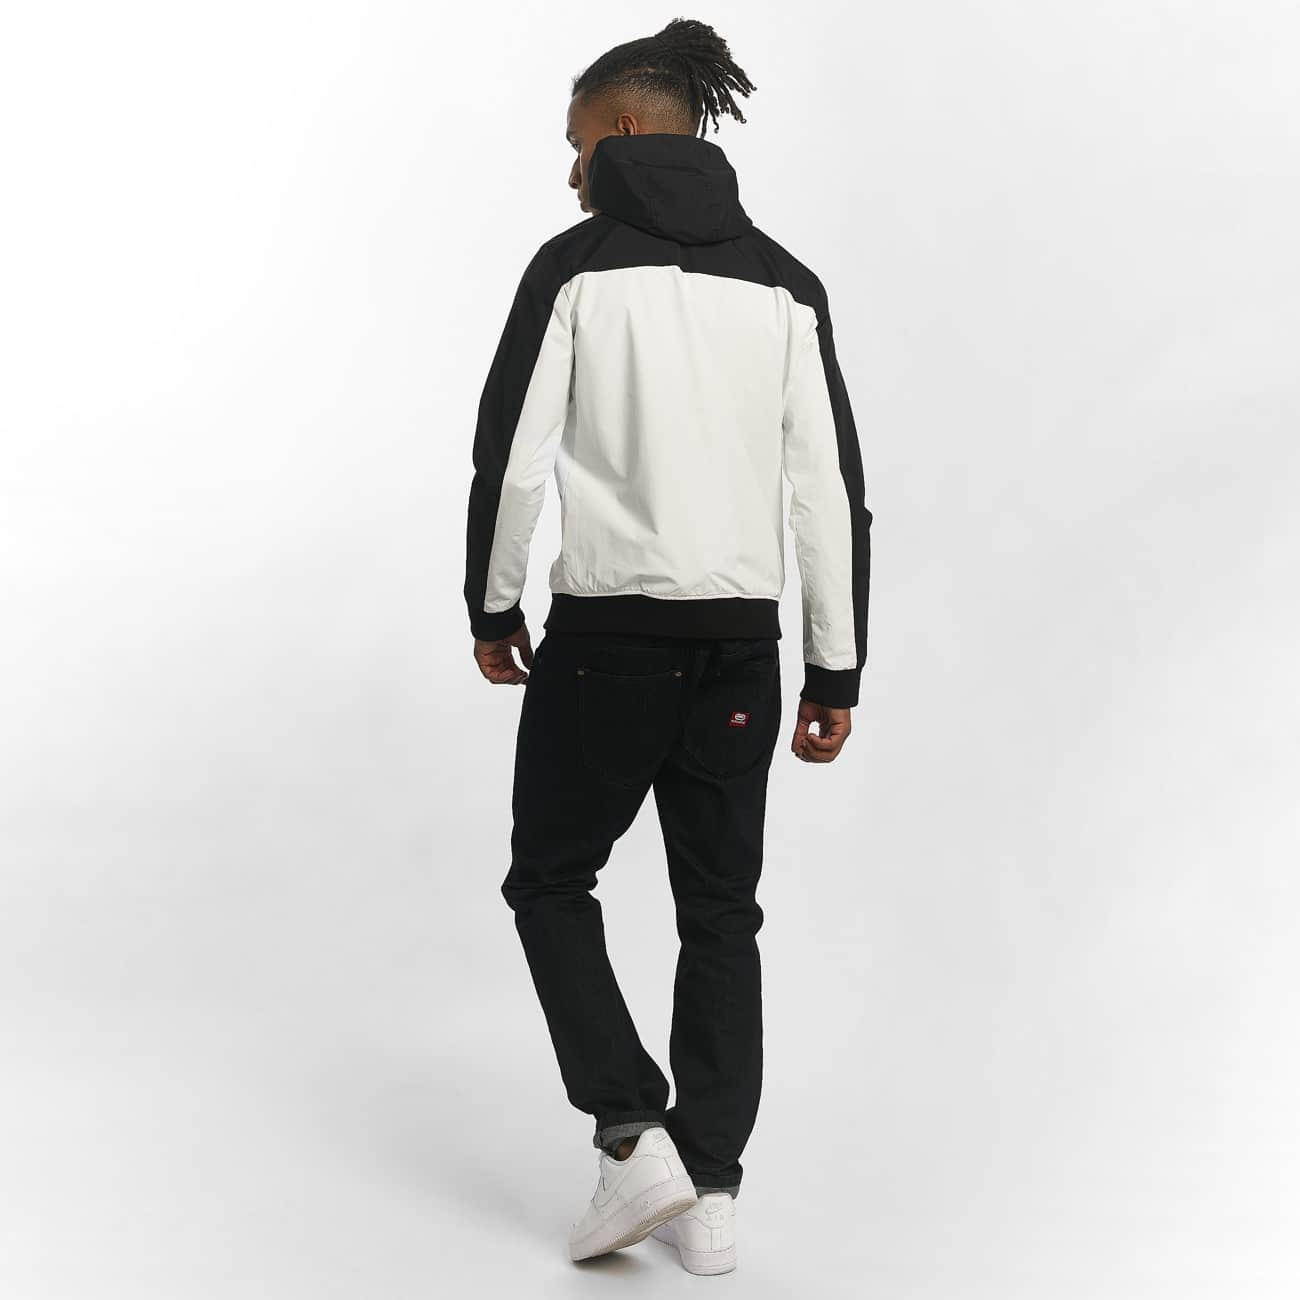 Ecko Unltd. / Lightweight Jacket BoaVista in white - Streetscenter